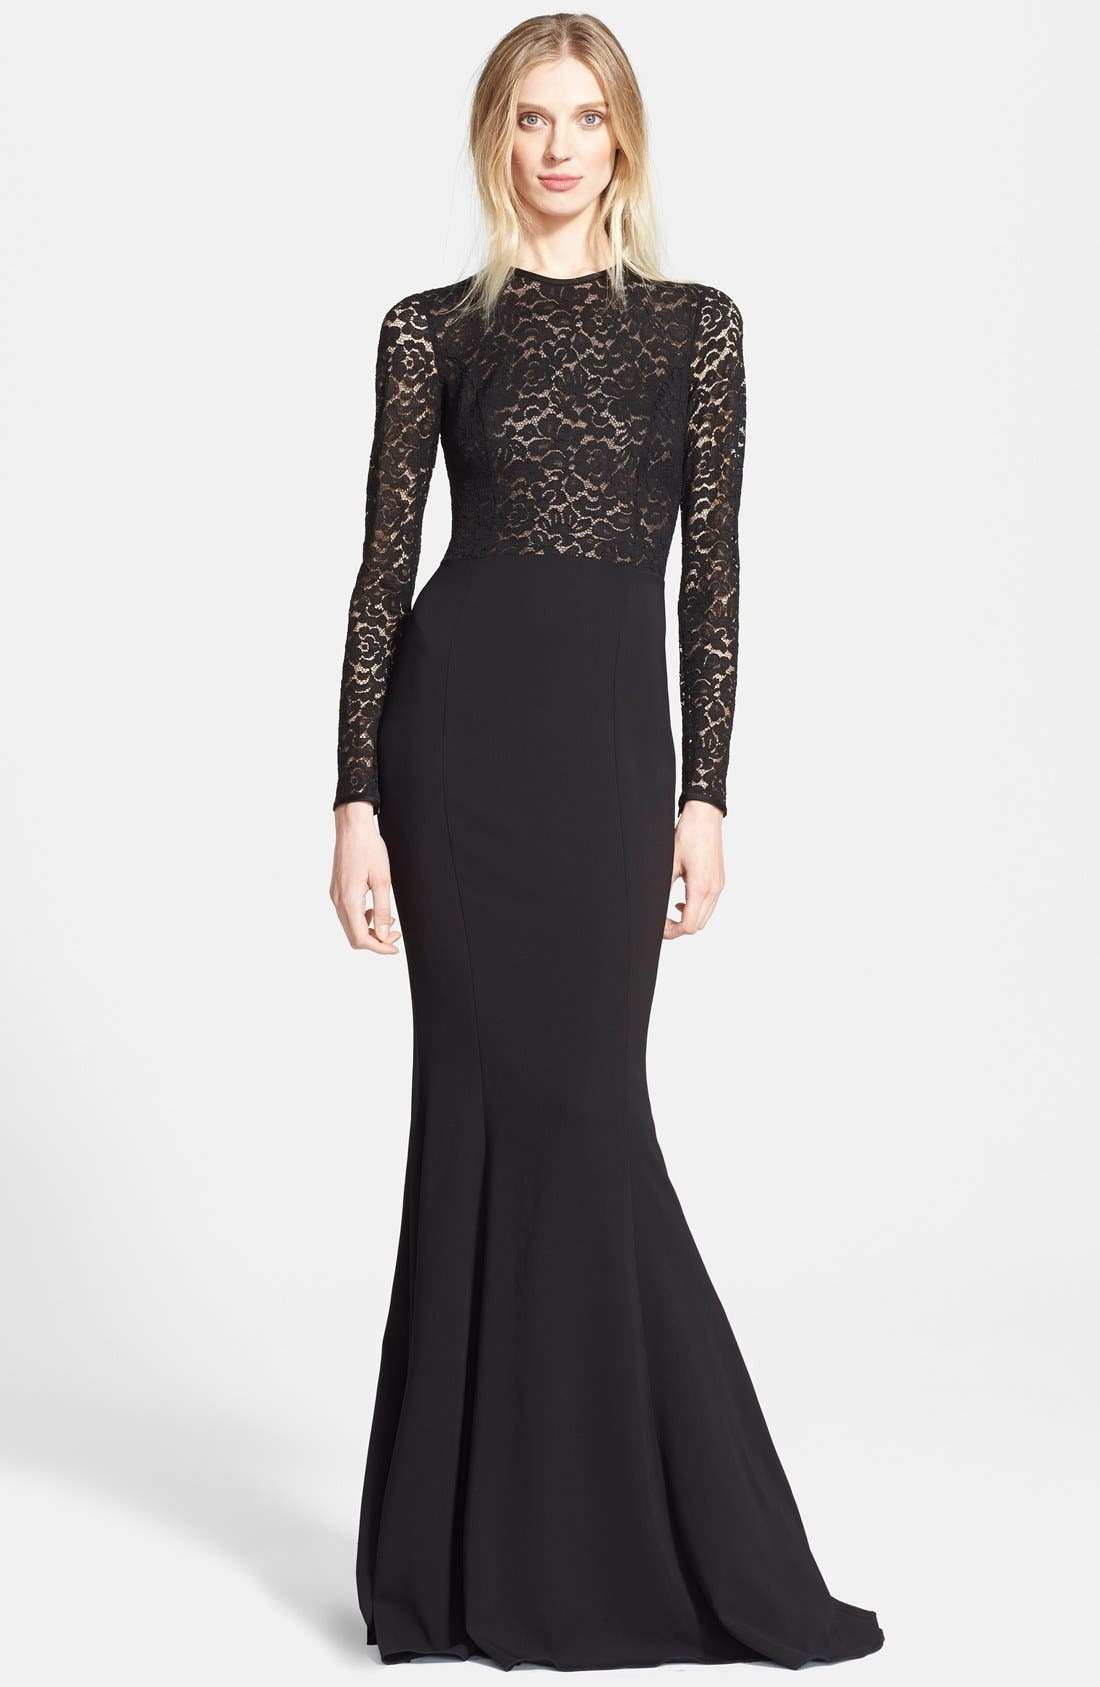 Alternate Image 1 Selected - Michael Kors Illusion Lace Crepe Cady Fishtail Gown